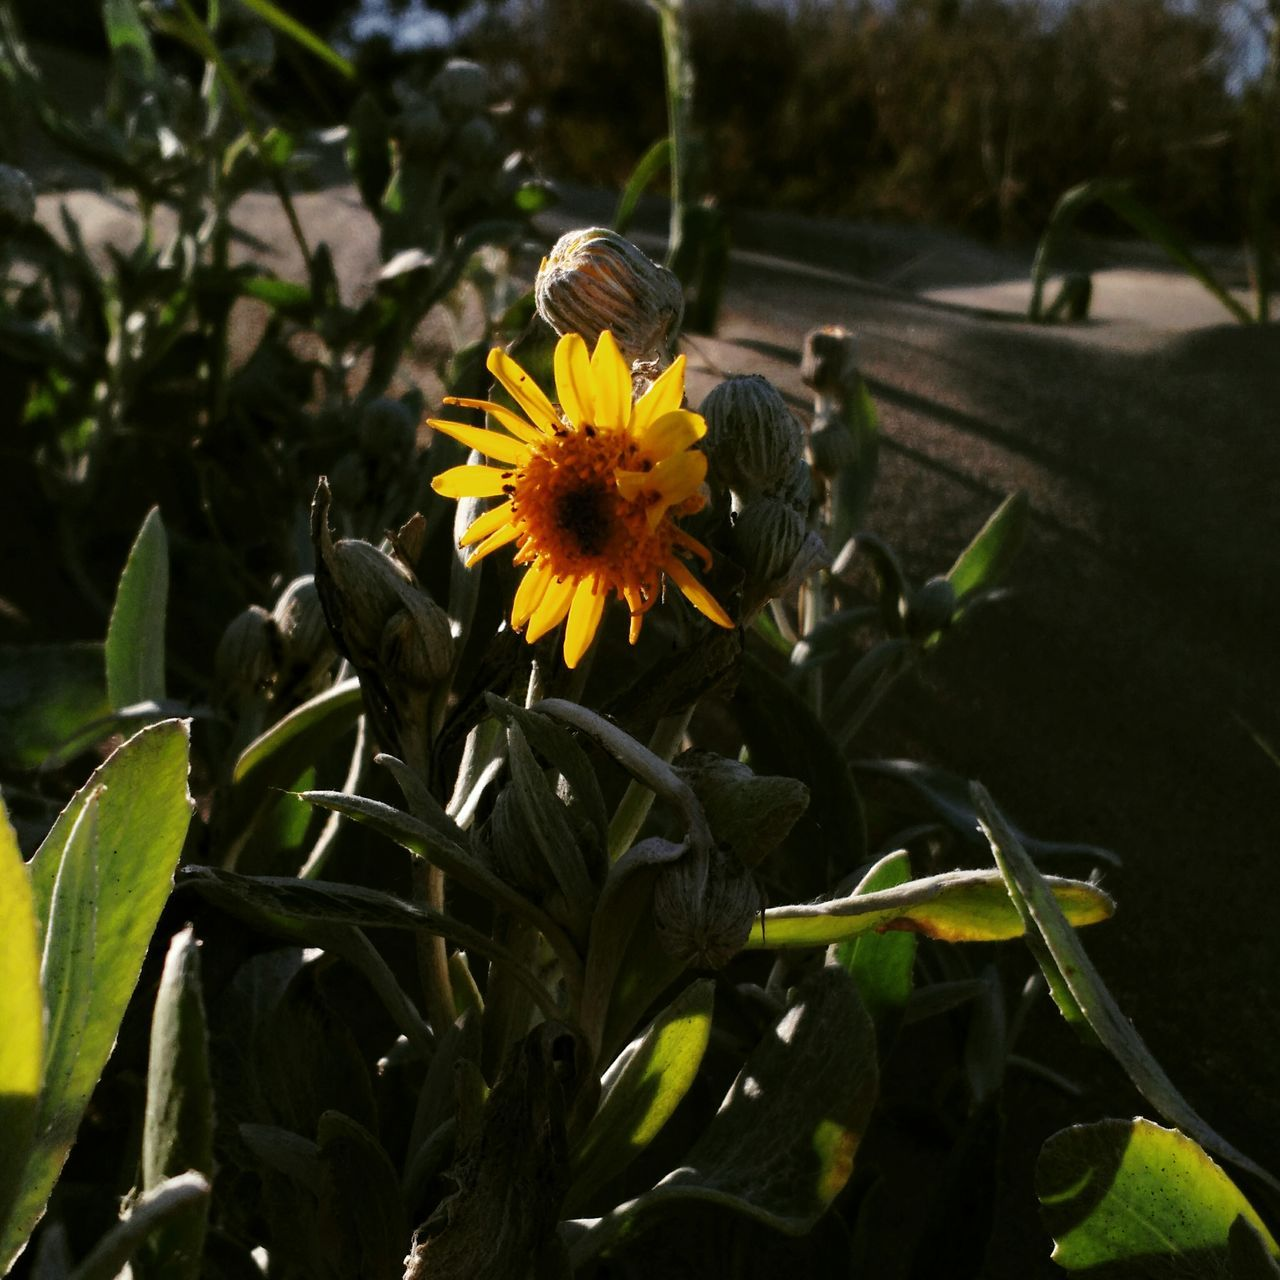 Flower Nature Yellow Beauty In Nature Flower Head Growth Petal Leaf Outdoors Close-up No People Plant Freshness Seaside Exploring Sunset Shadows&lights buenos aires